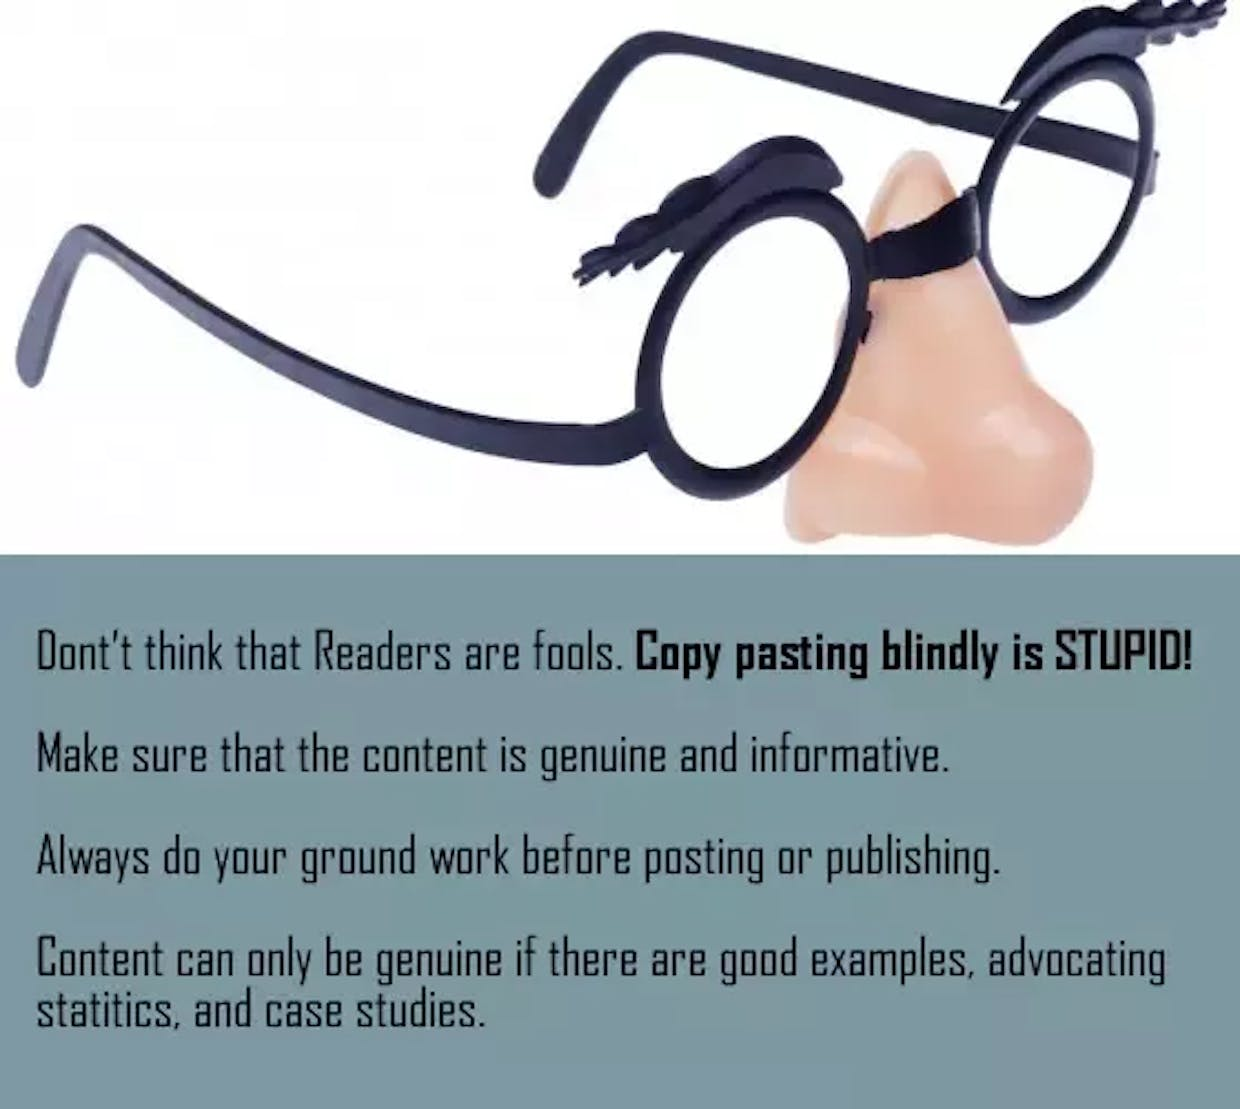 What are some common beginner mistakes in content marketing?